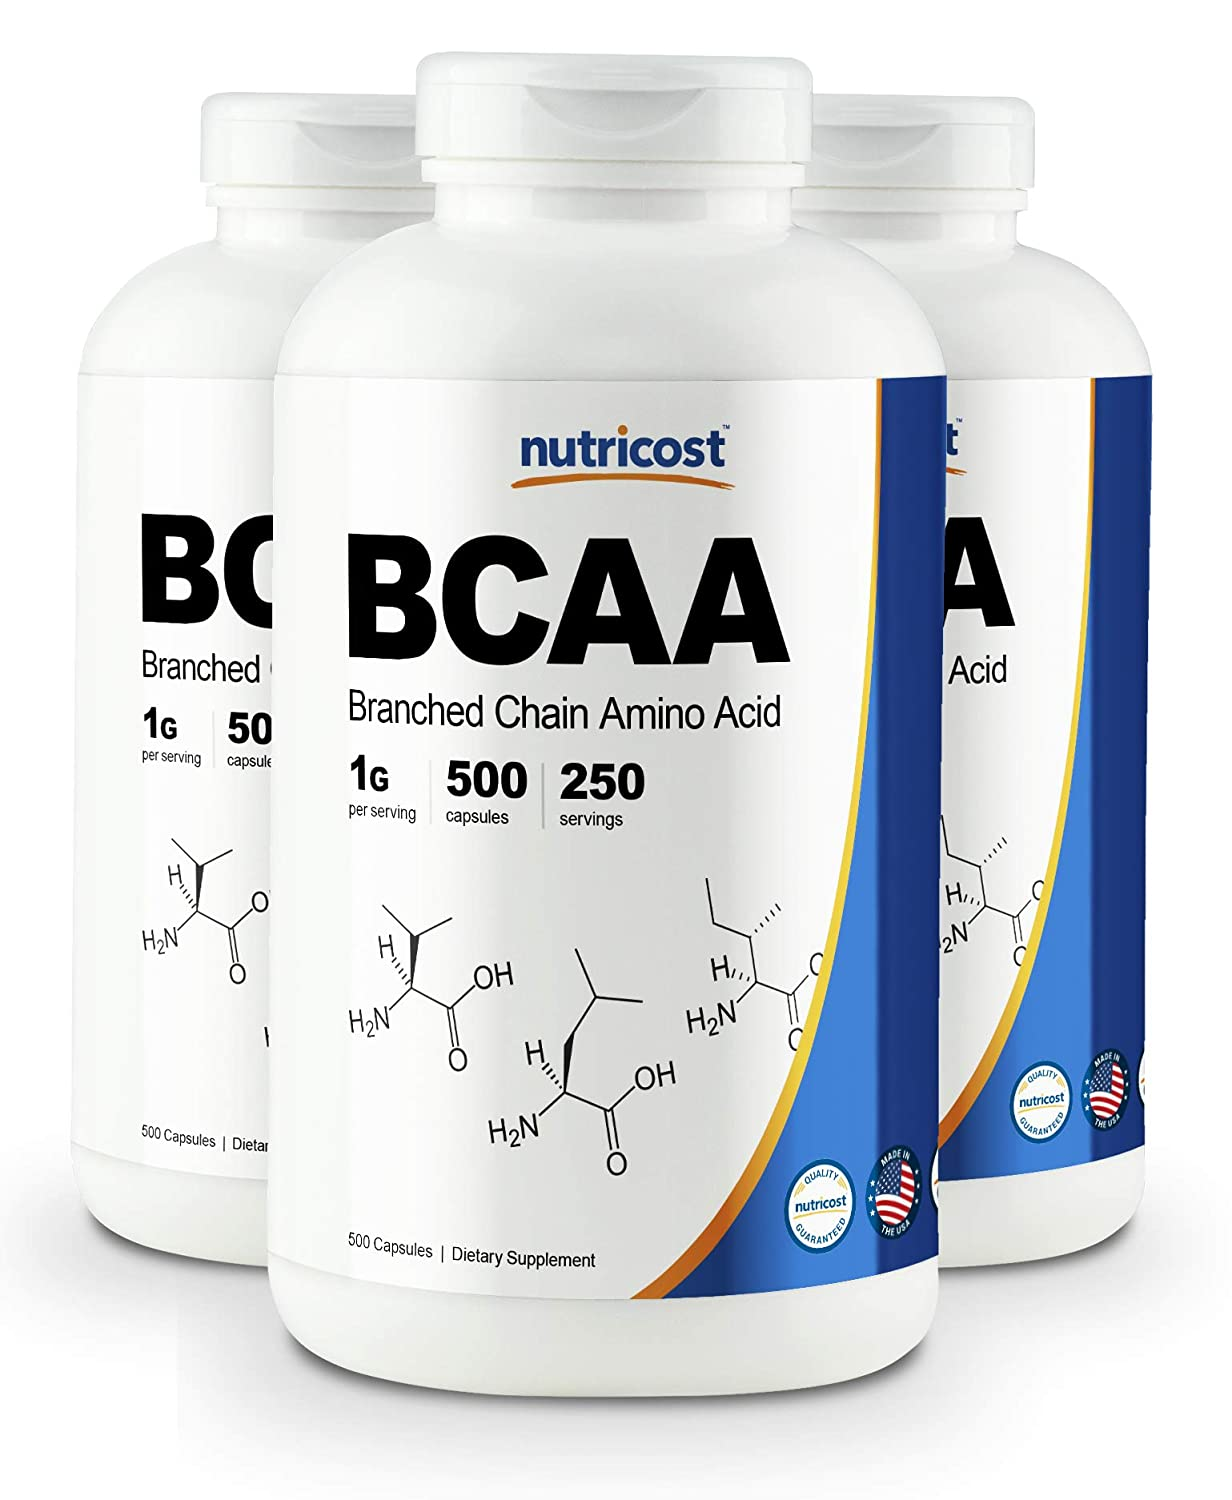 Nutricost BCAA Capsules 2 1 1 500mg, 500 Caps 3 Bottles